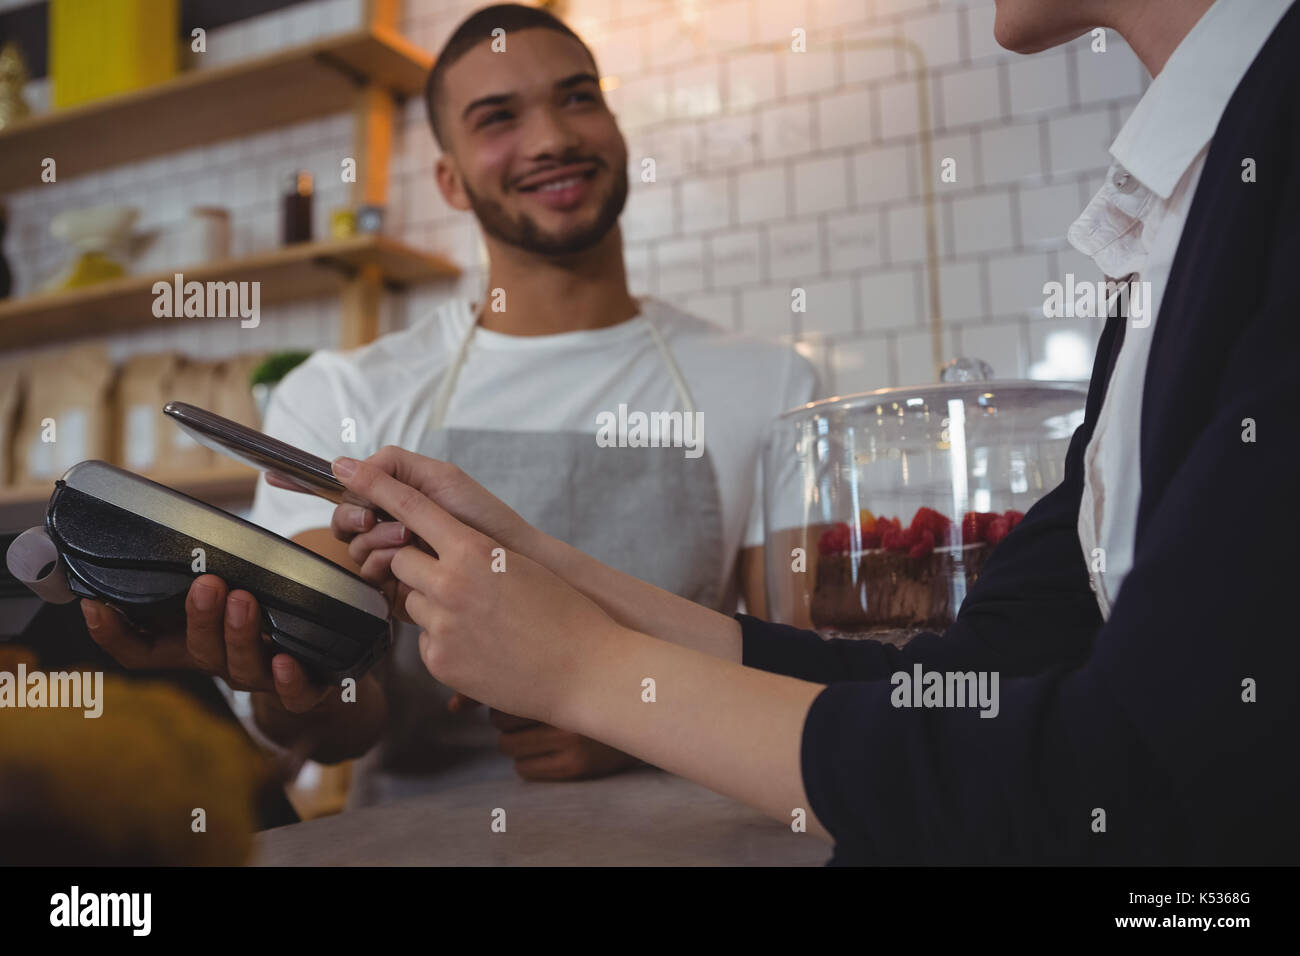 Waiter showing credit card reader to female owner at counter in cafe - Stock Image